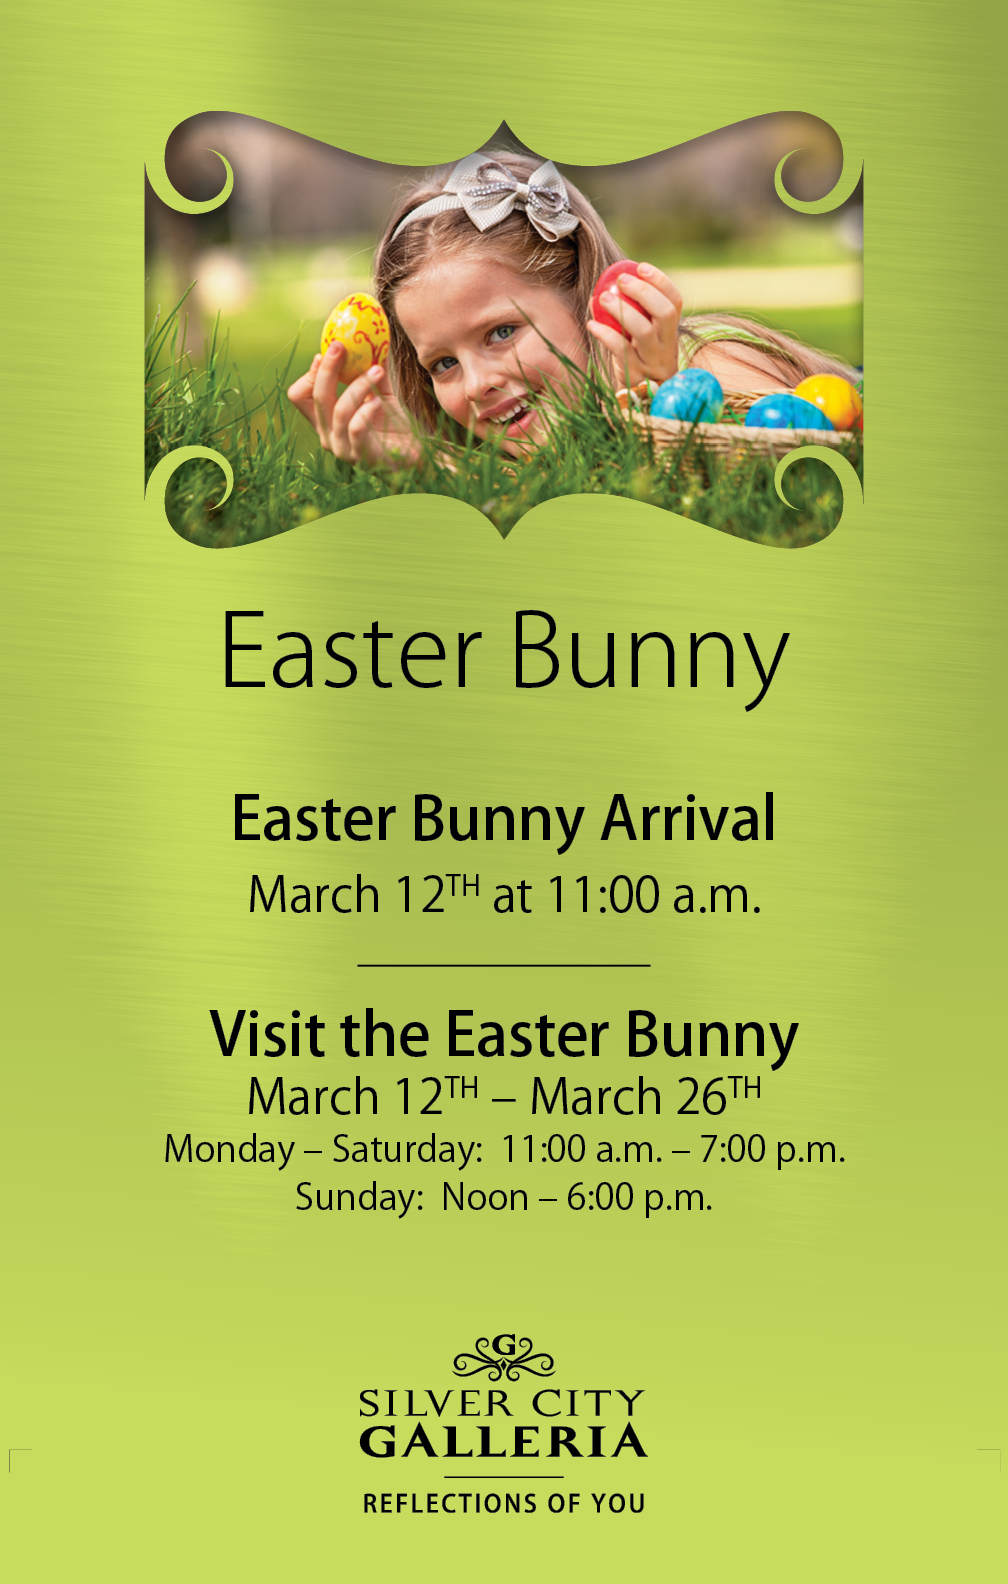 Easter Bunny Ad Design for Silver City Galleria by Cybergraph®